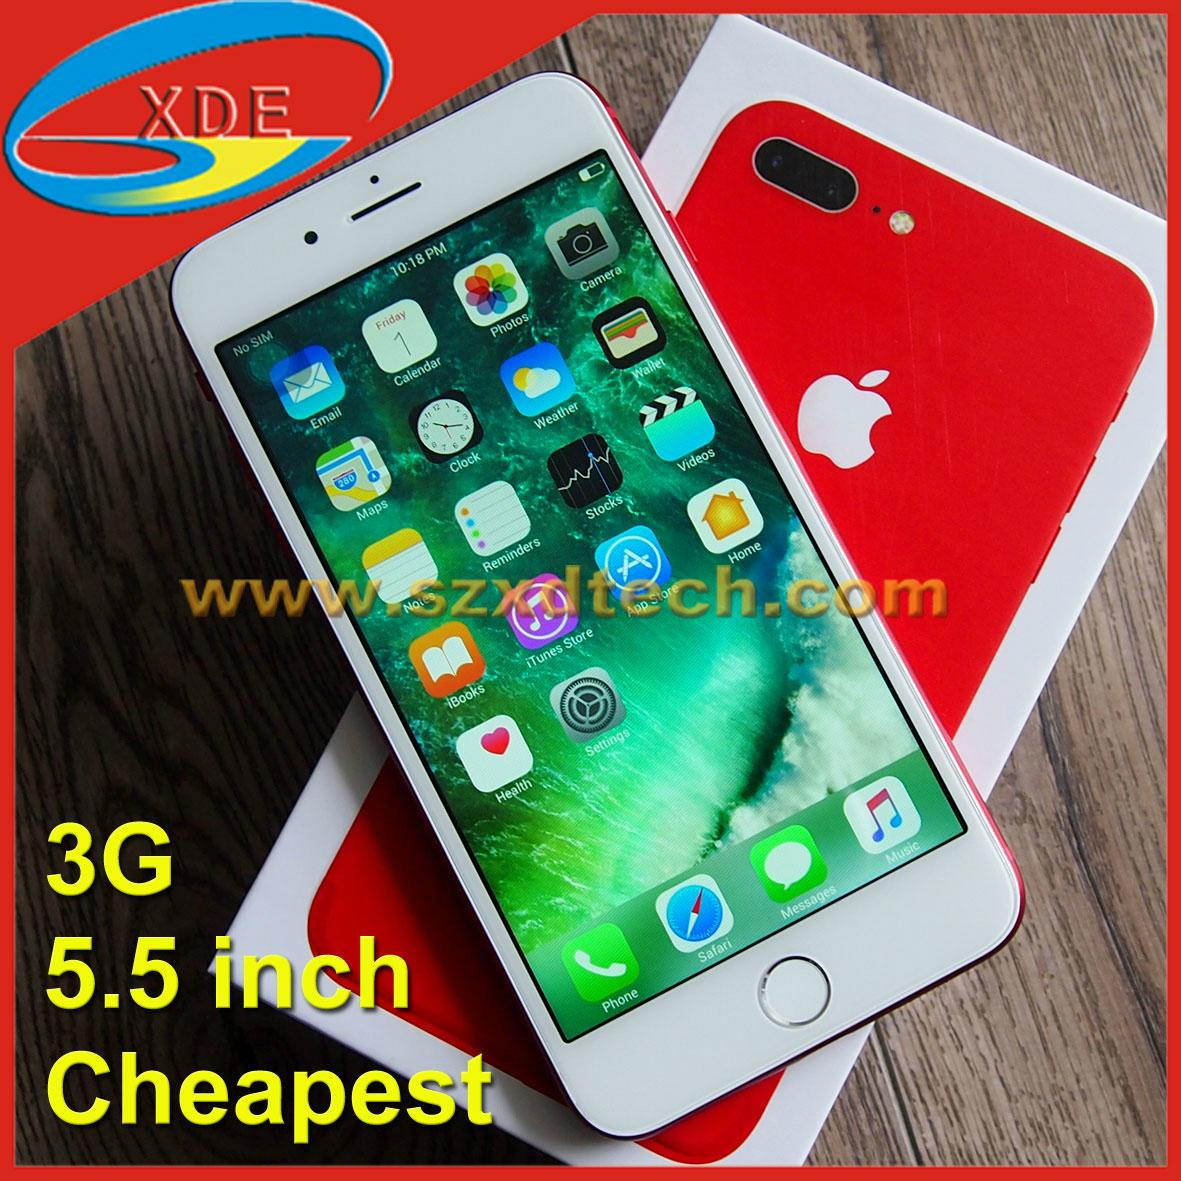 Replica iPhone 7 Plus Cheapest iPhone 5.5 inch with 3G Support Downloading